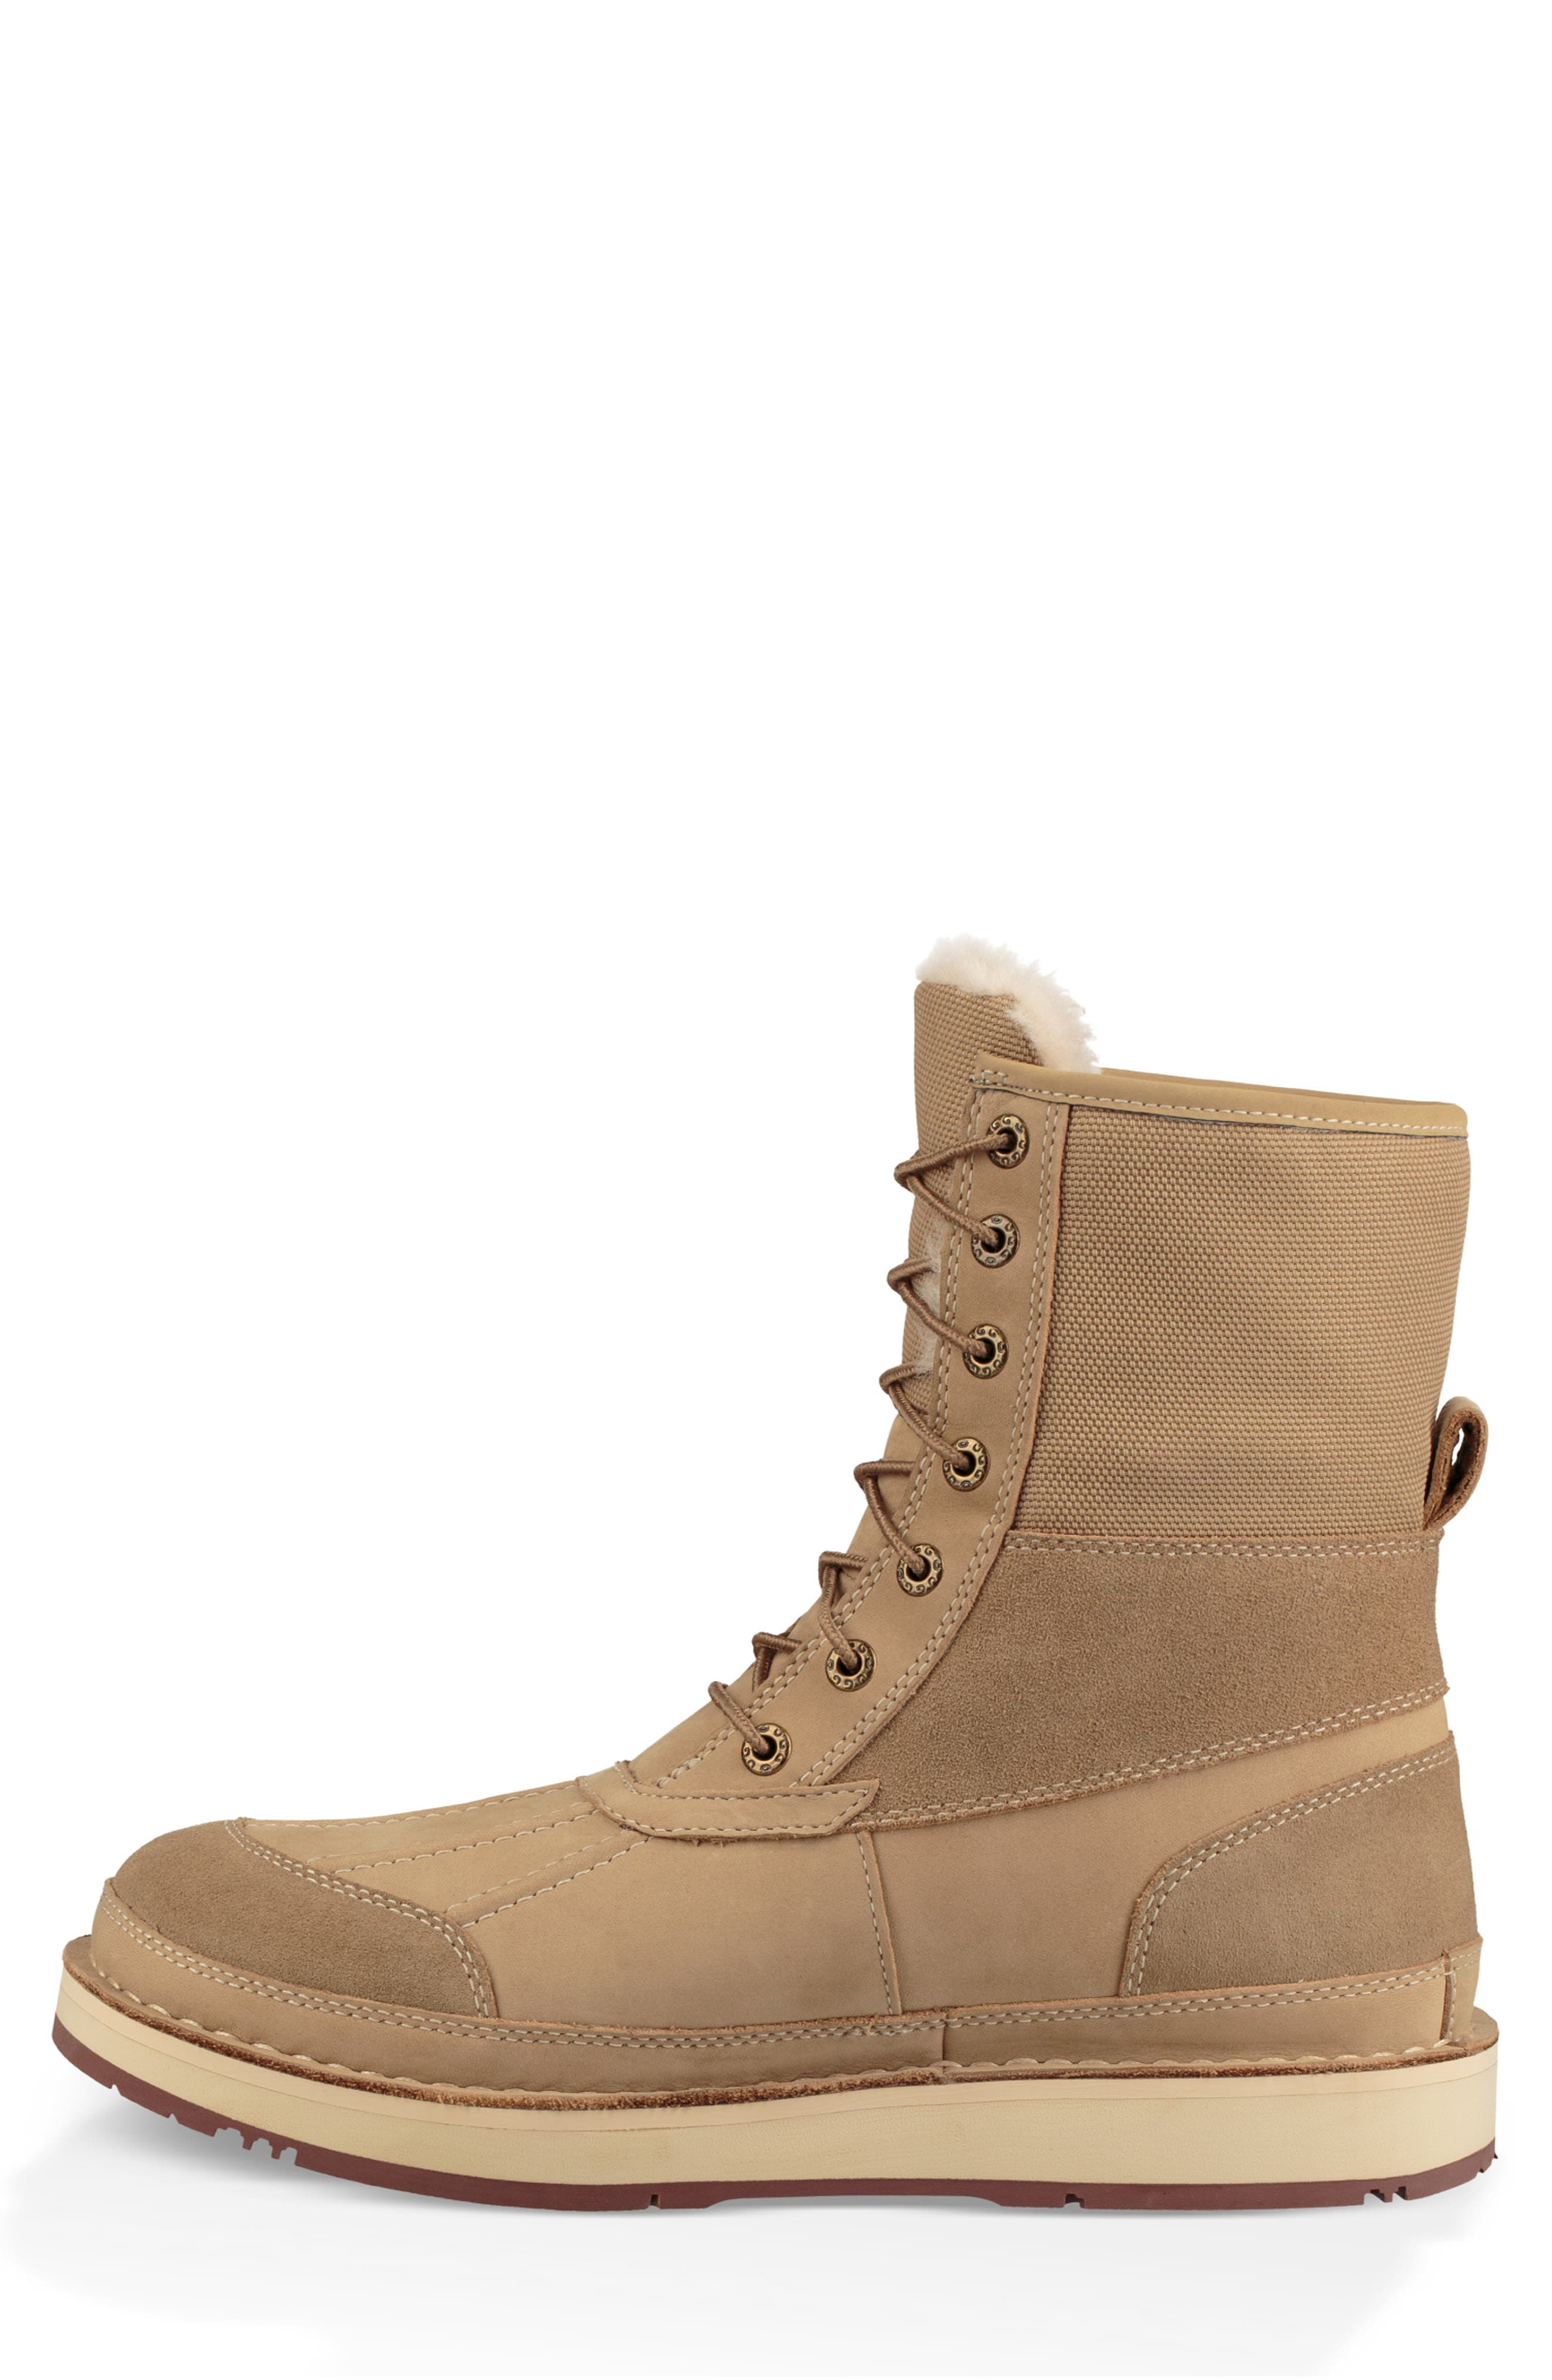 Avalanche Butte Waterproof Boot,                             Alternate thumbnail 9, color,                             DESERT TAN